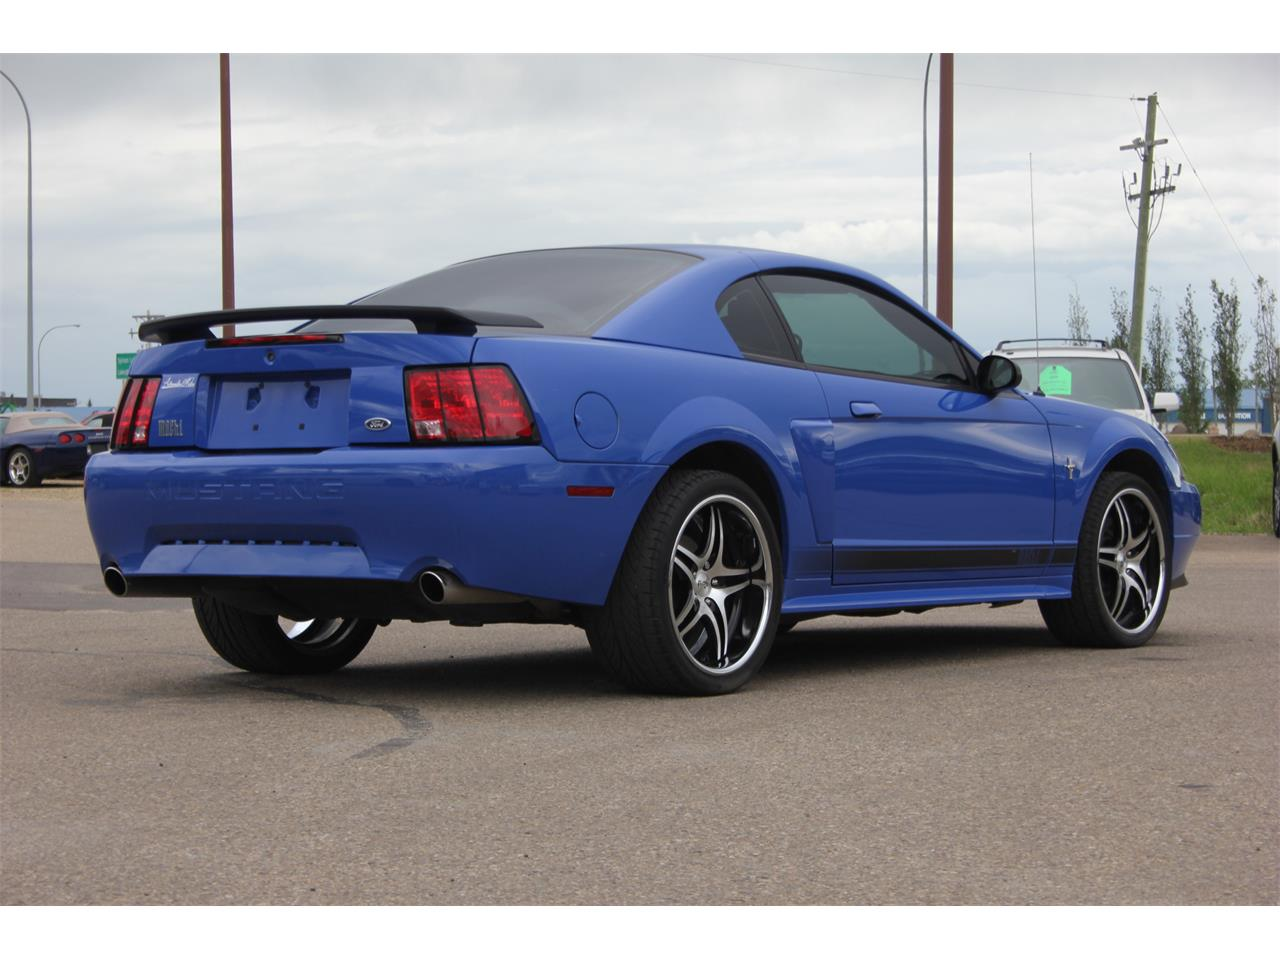 Large Picture of '03 Ford Mustang Mach 1 located in Alberta - $19,900.00 - LAXP